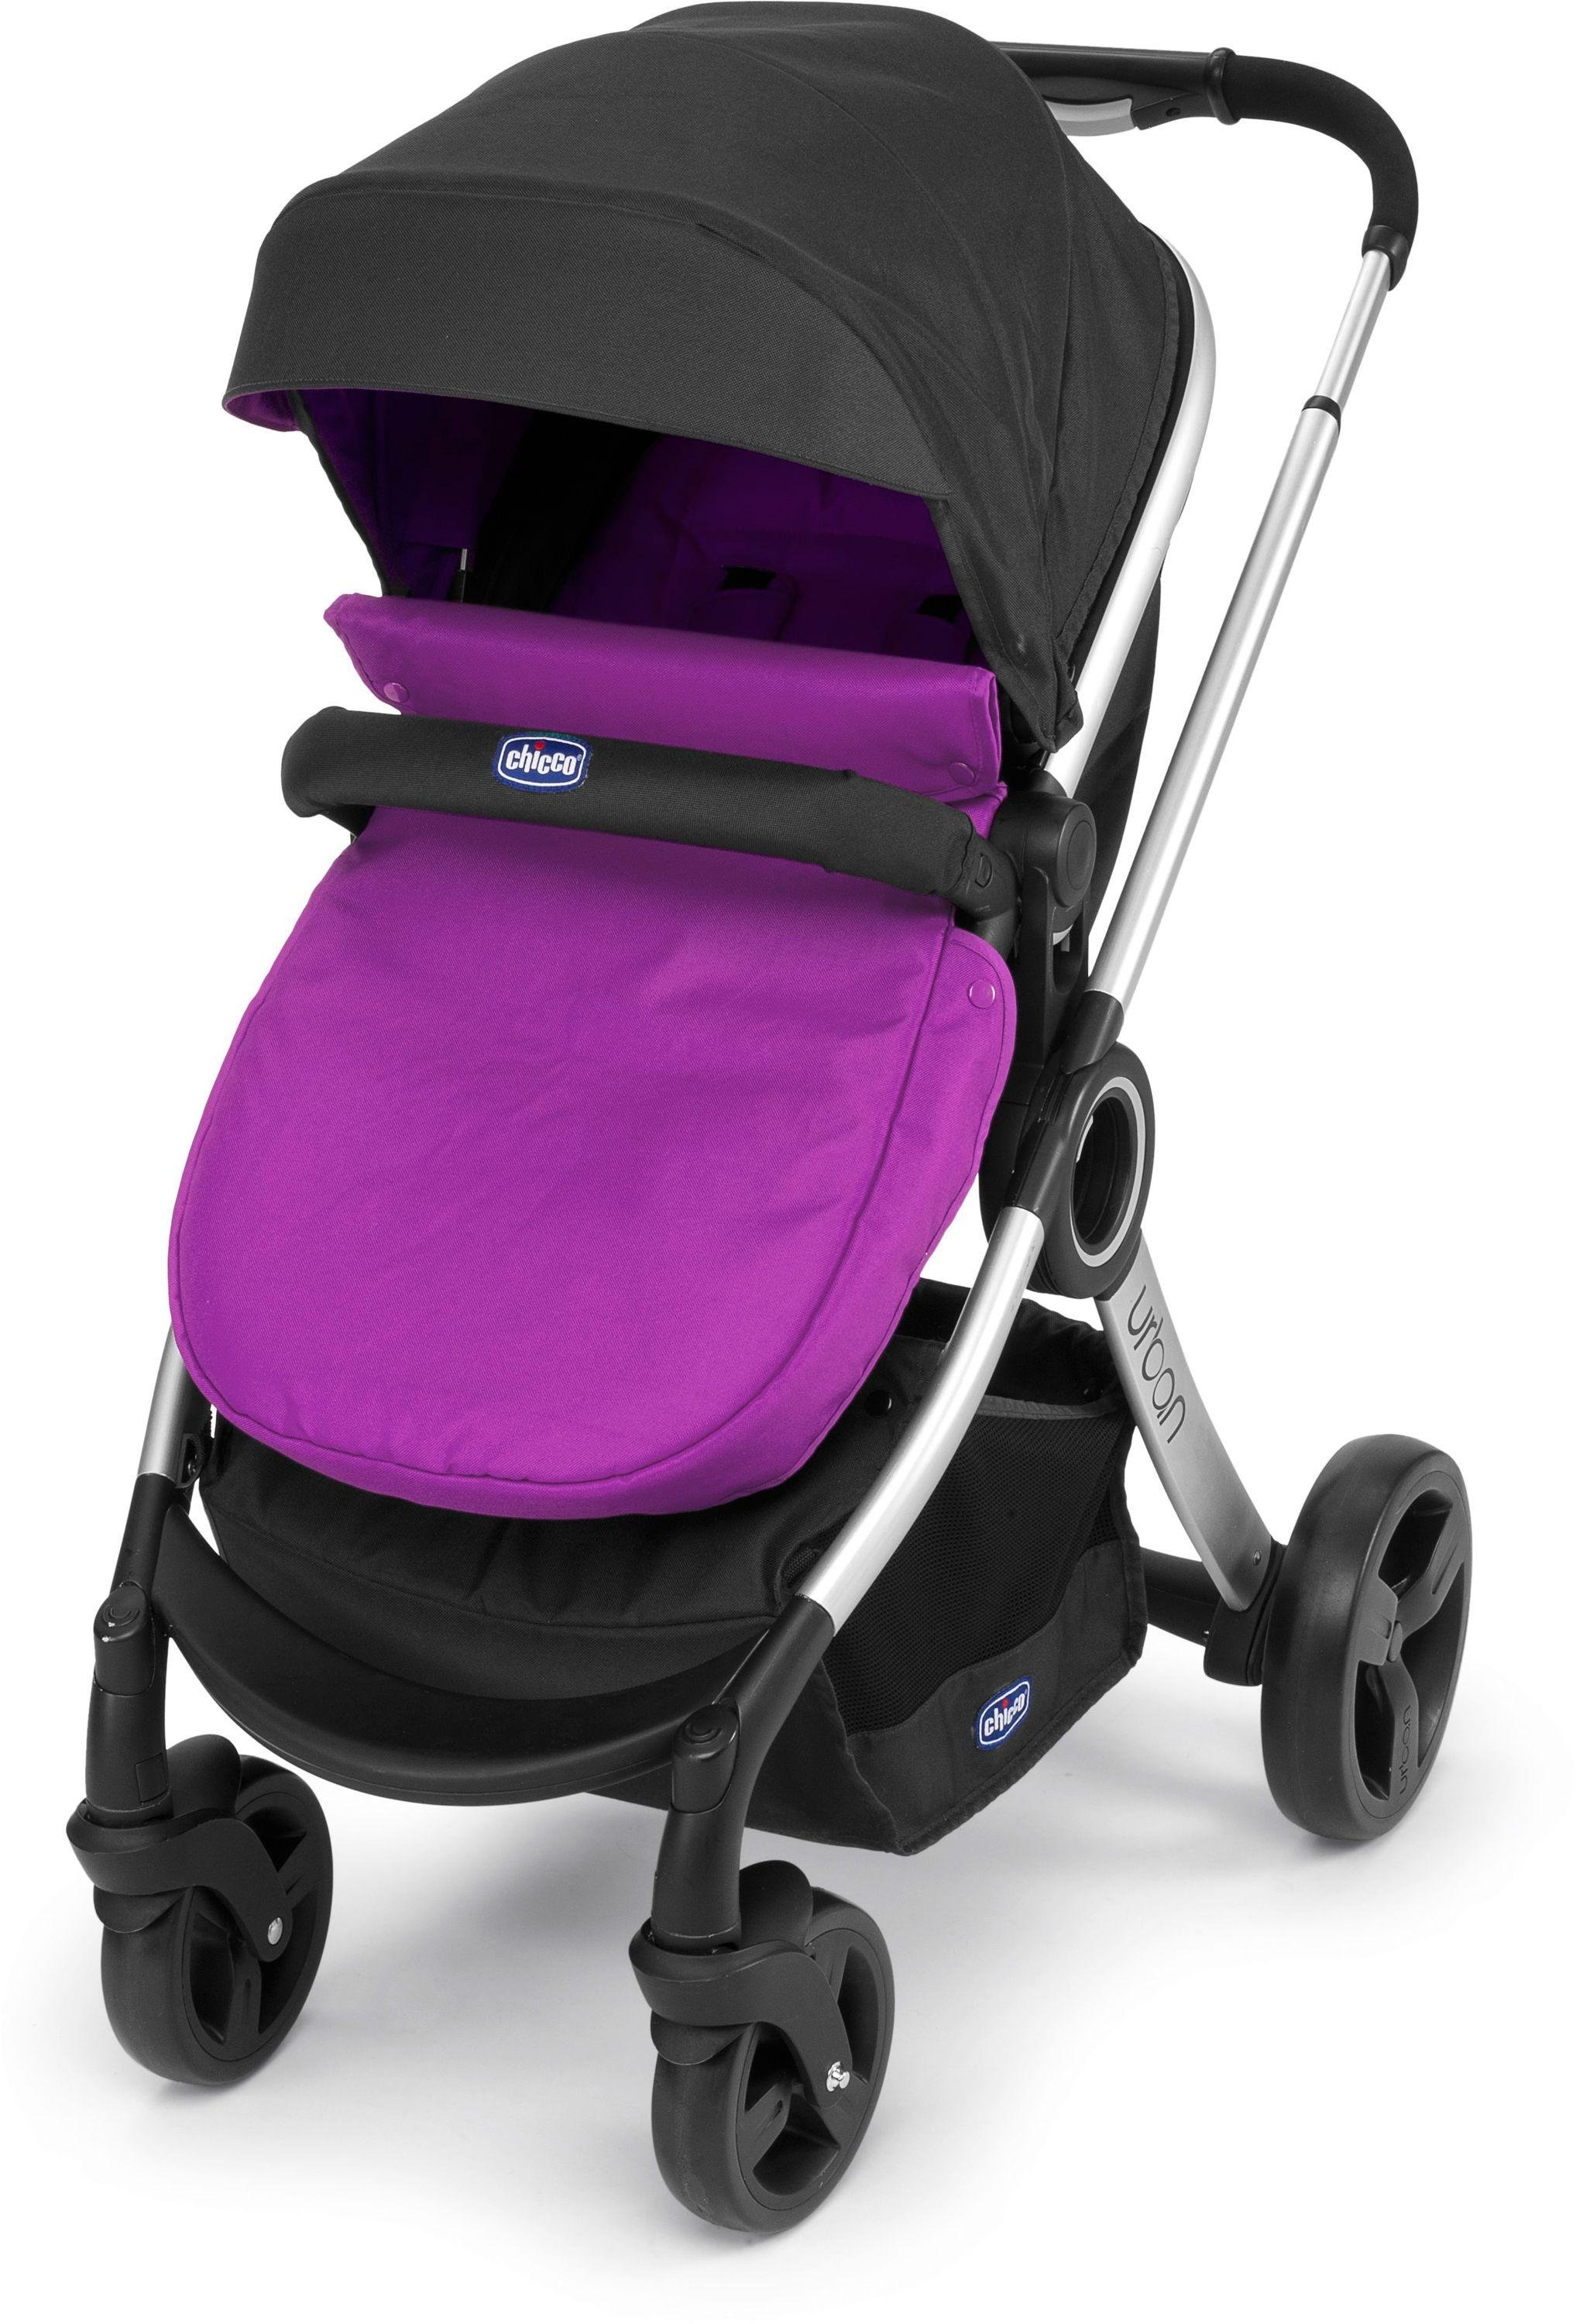 Image of Chicco - Urban Pram and - Pushchair Colour Pack - Cyclamen